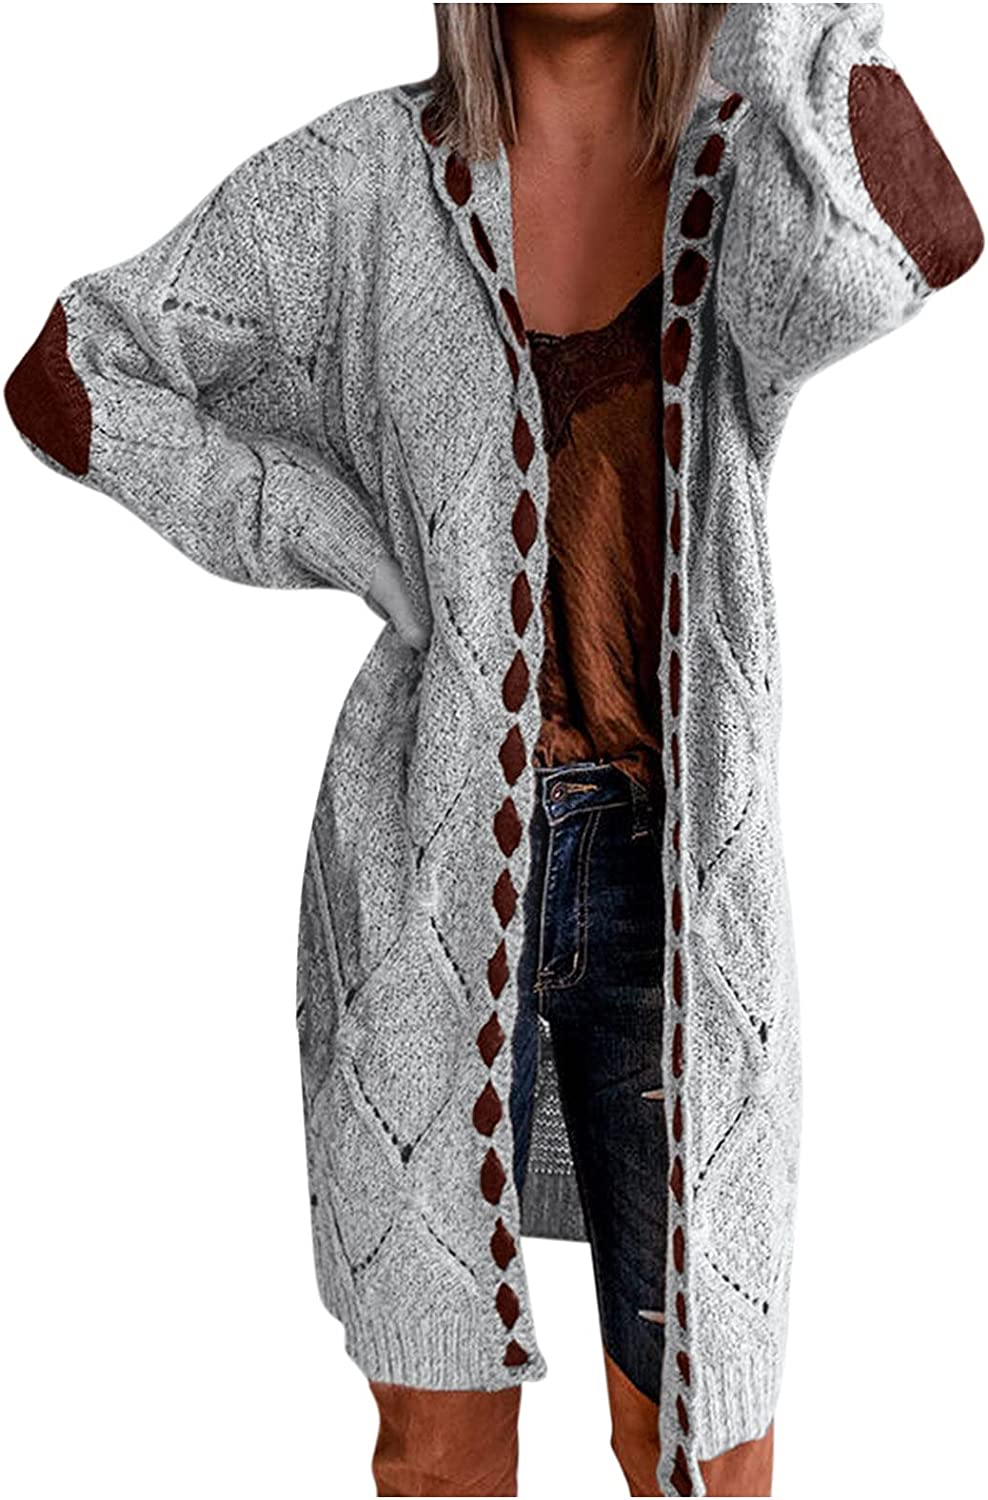 Xinantime Women's Knitted Cardigan Mid-Length Pocket Open Front Sweaters Ladies Casual Patchwork Cable Knit Coat